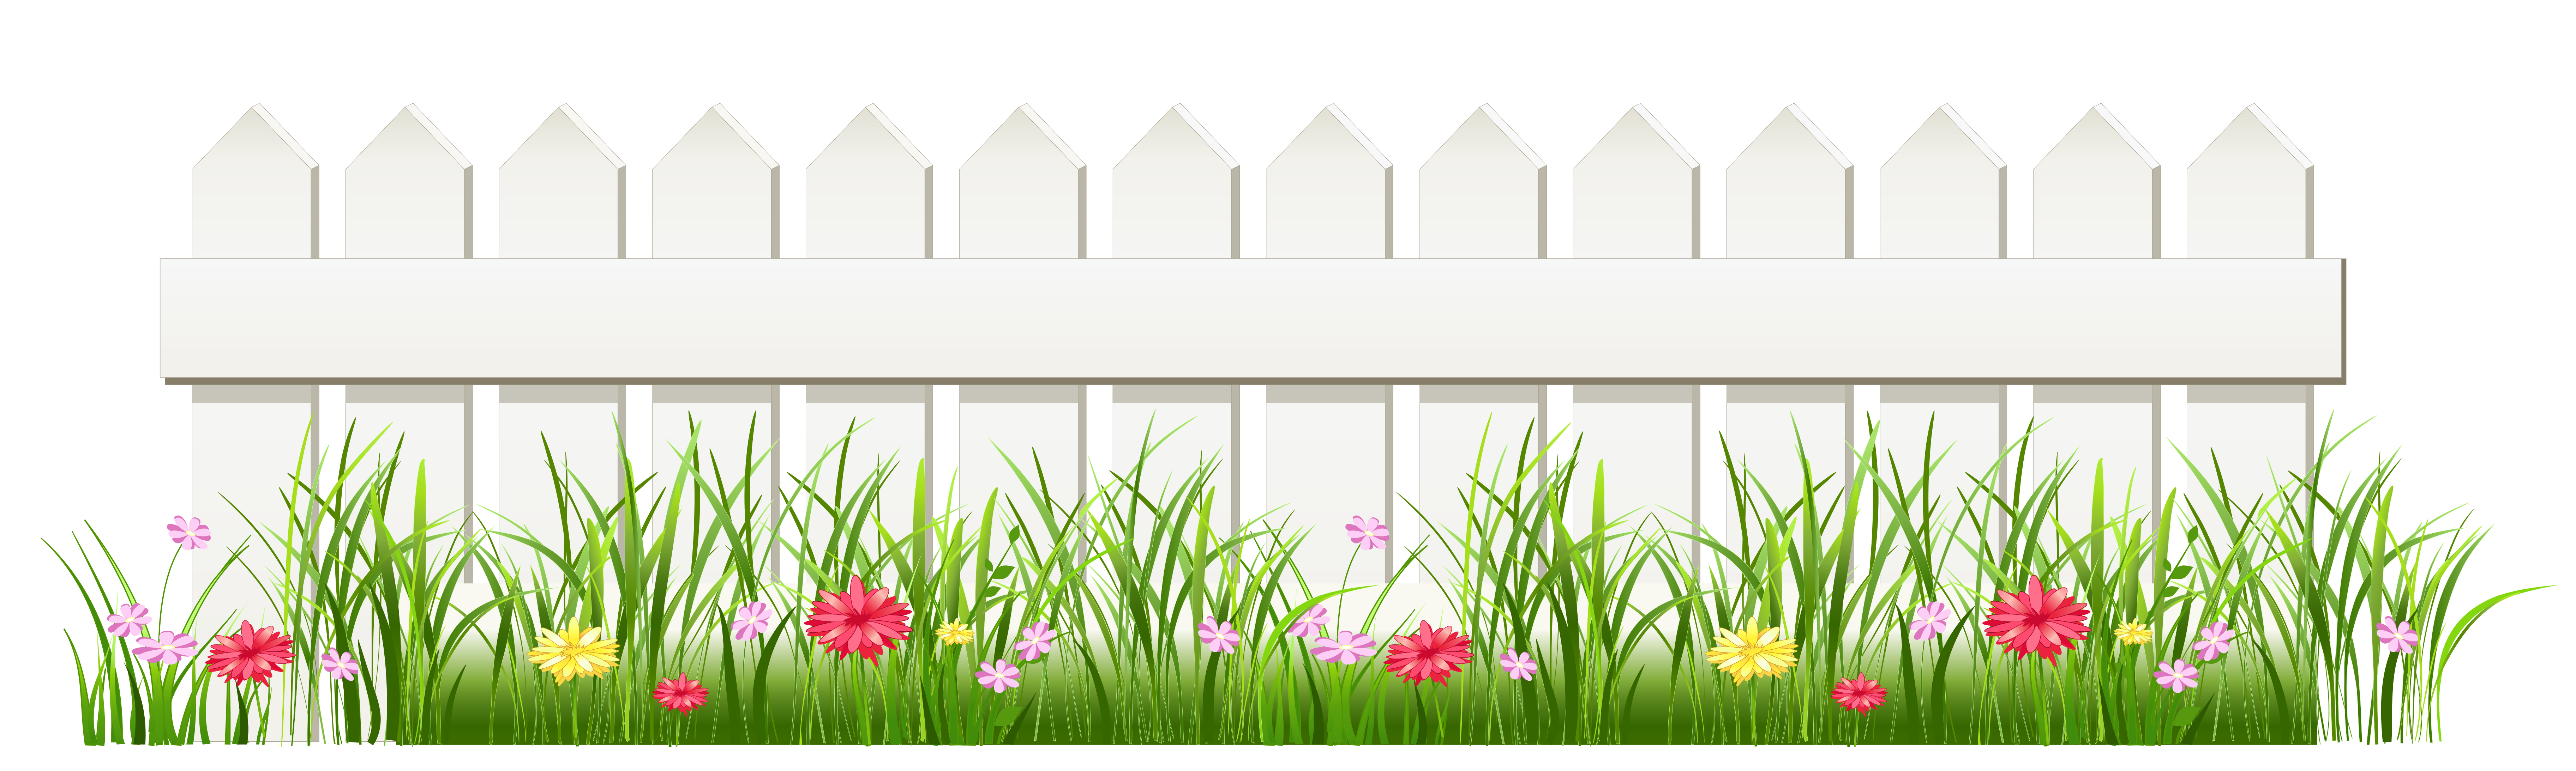 Fence clipart. Free cliparts download clip